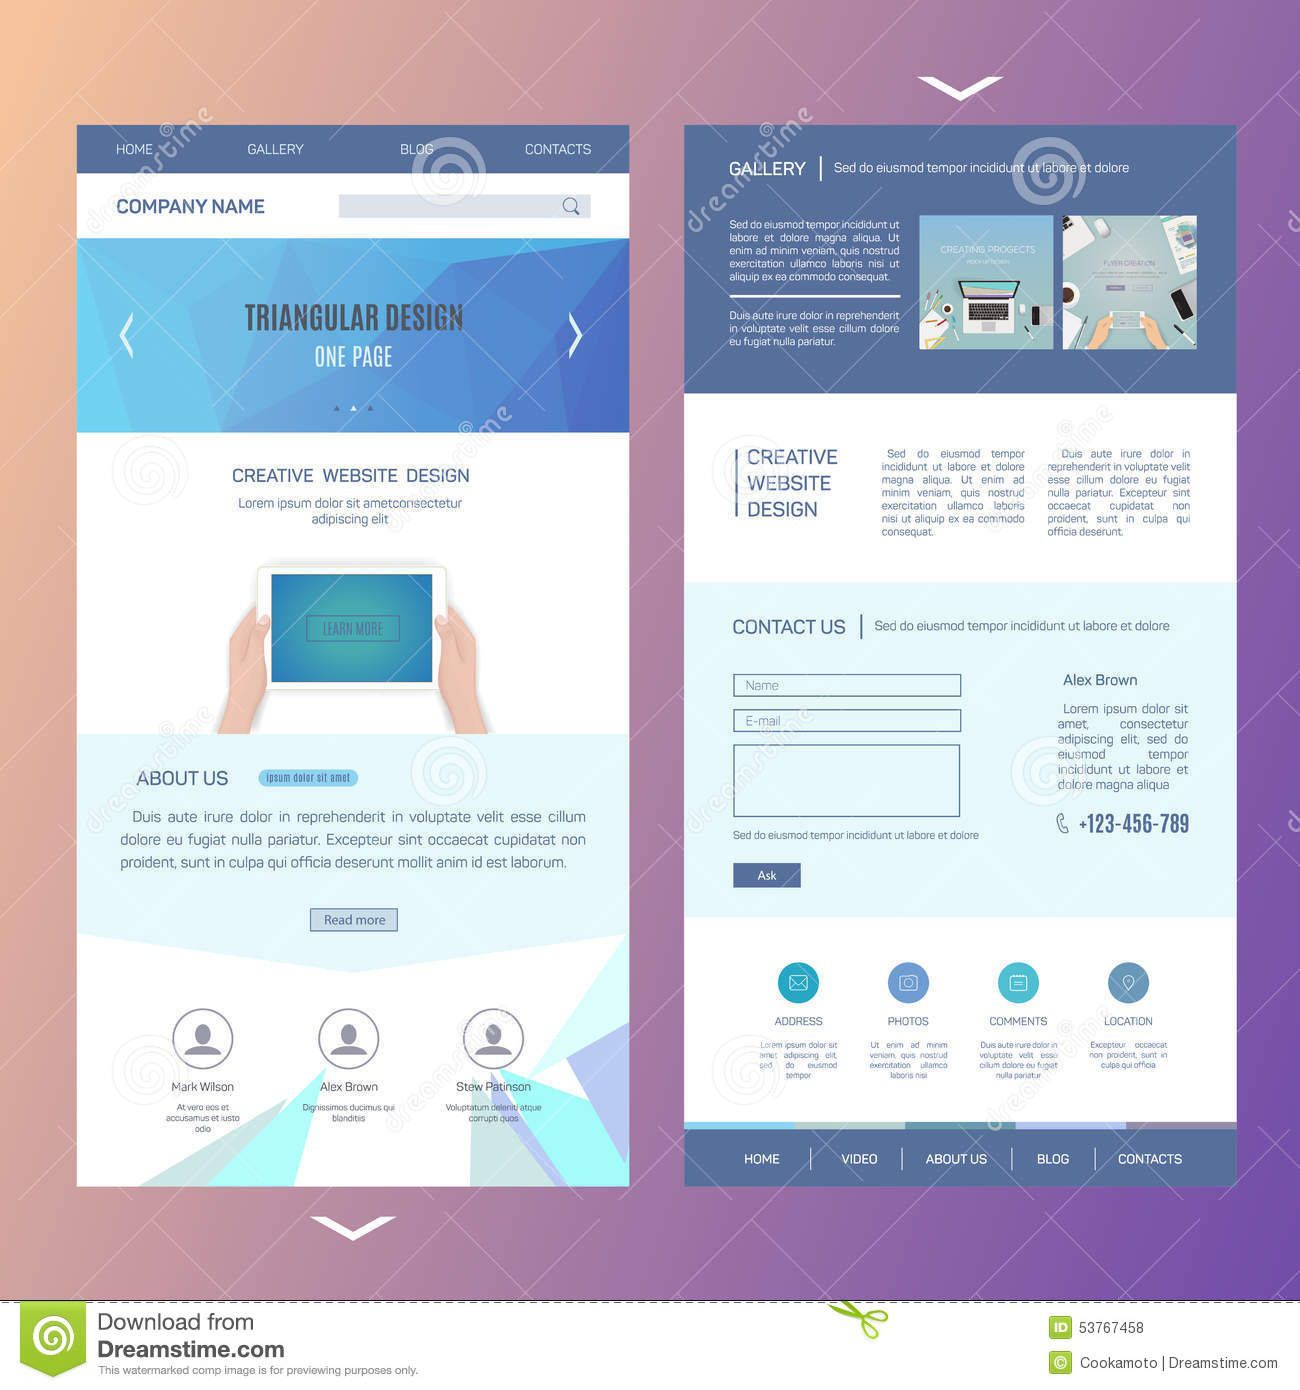 006 Rare Creative One Page Website Template Free Download High Definition Full